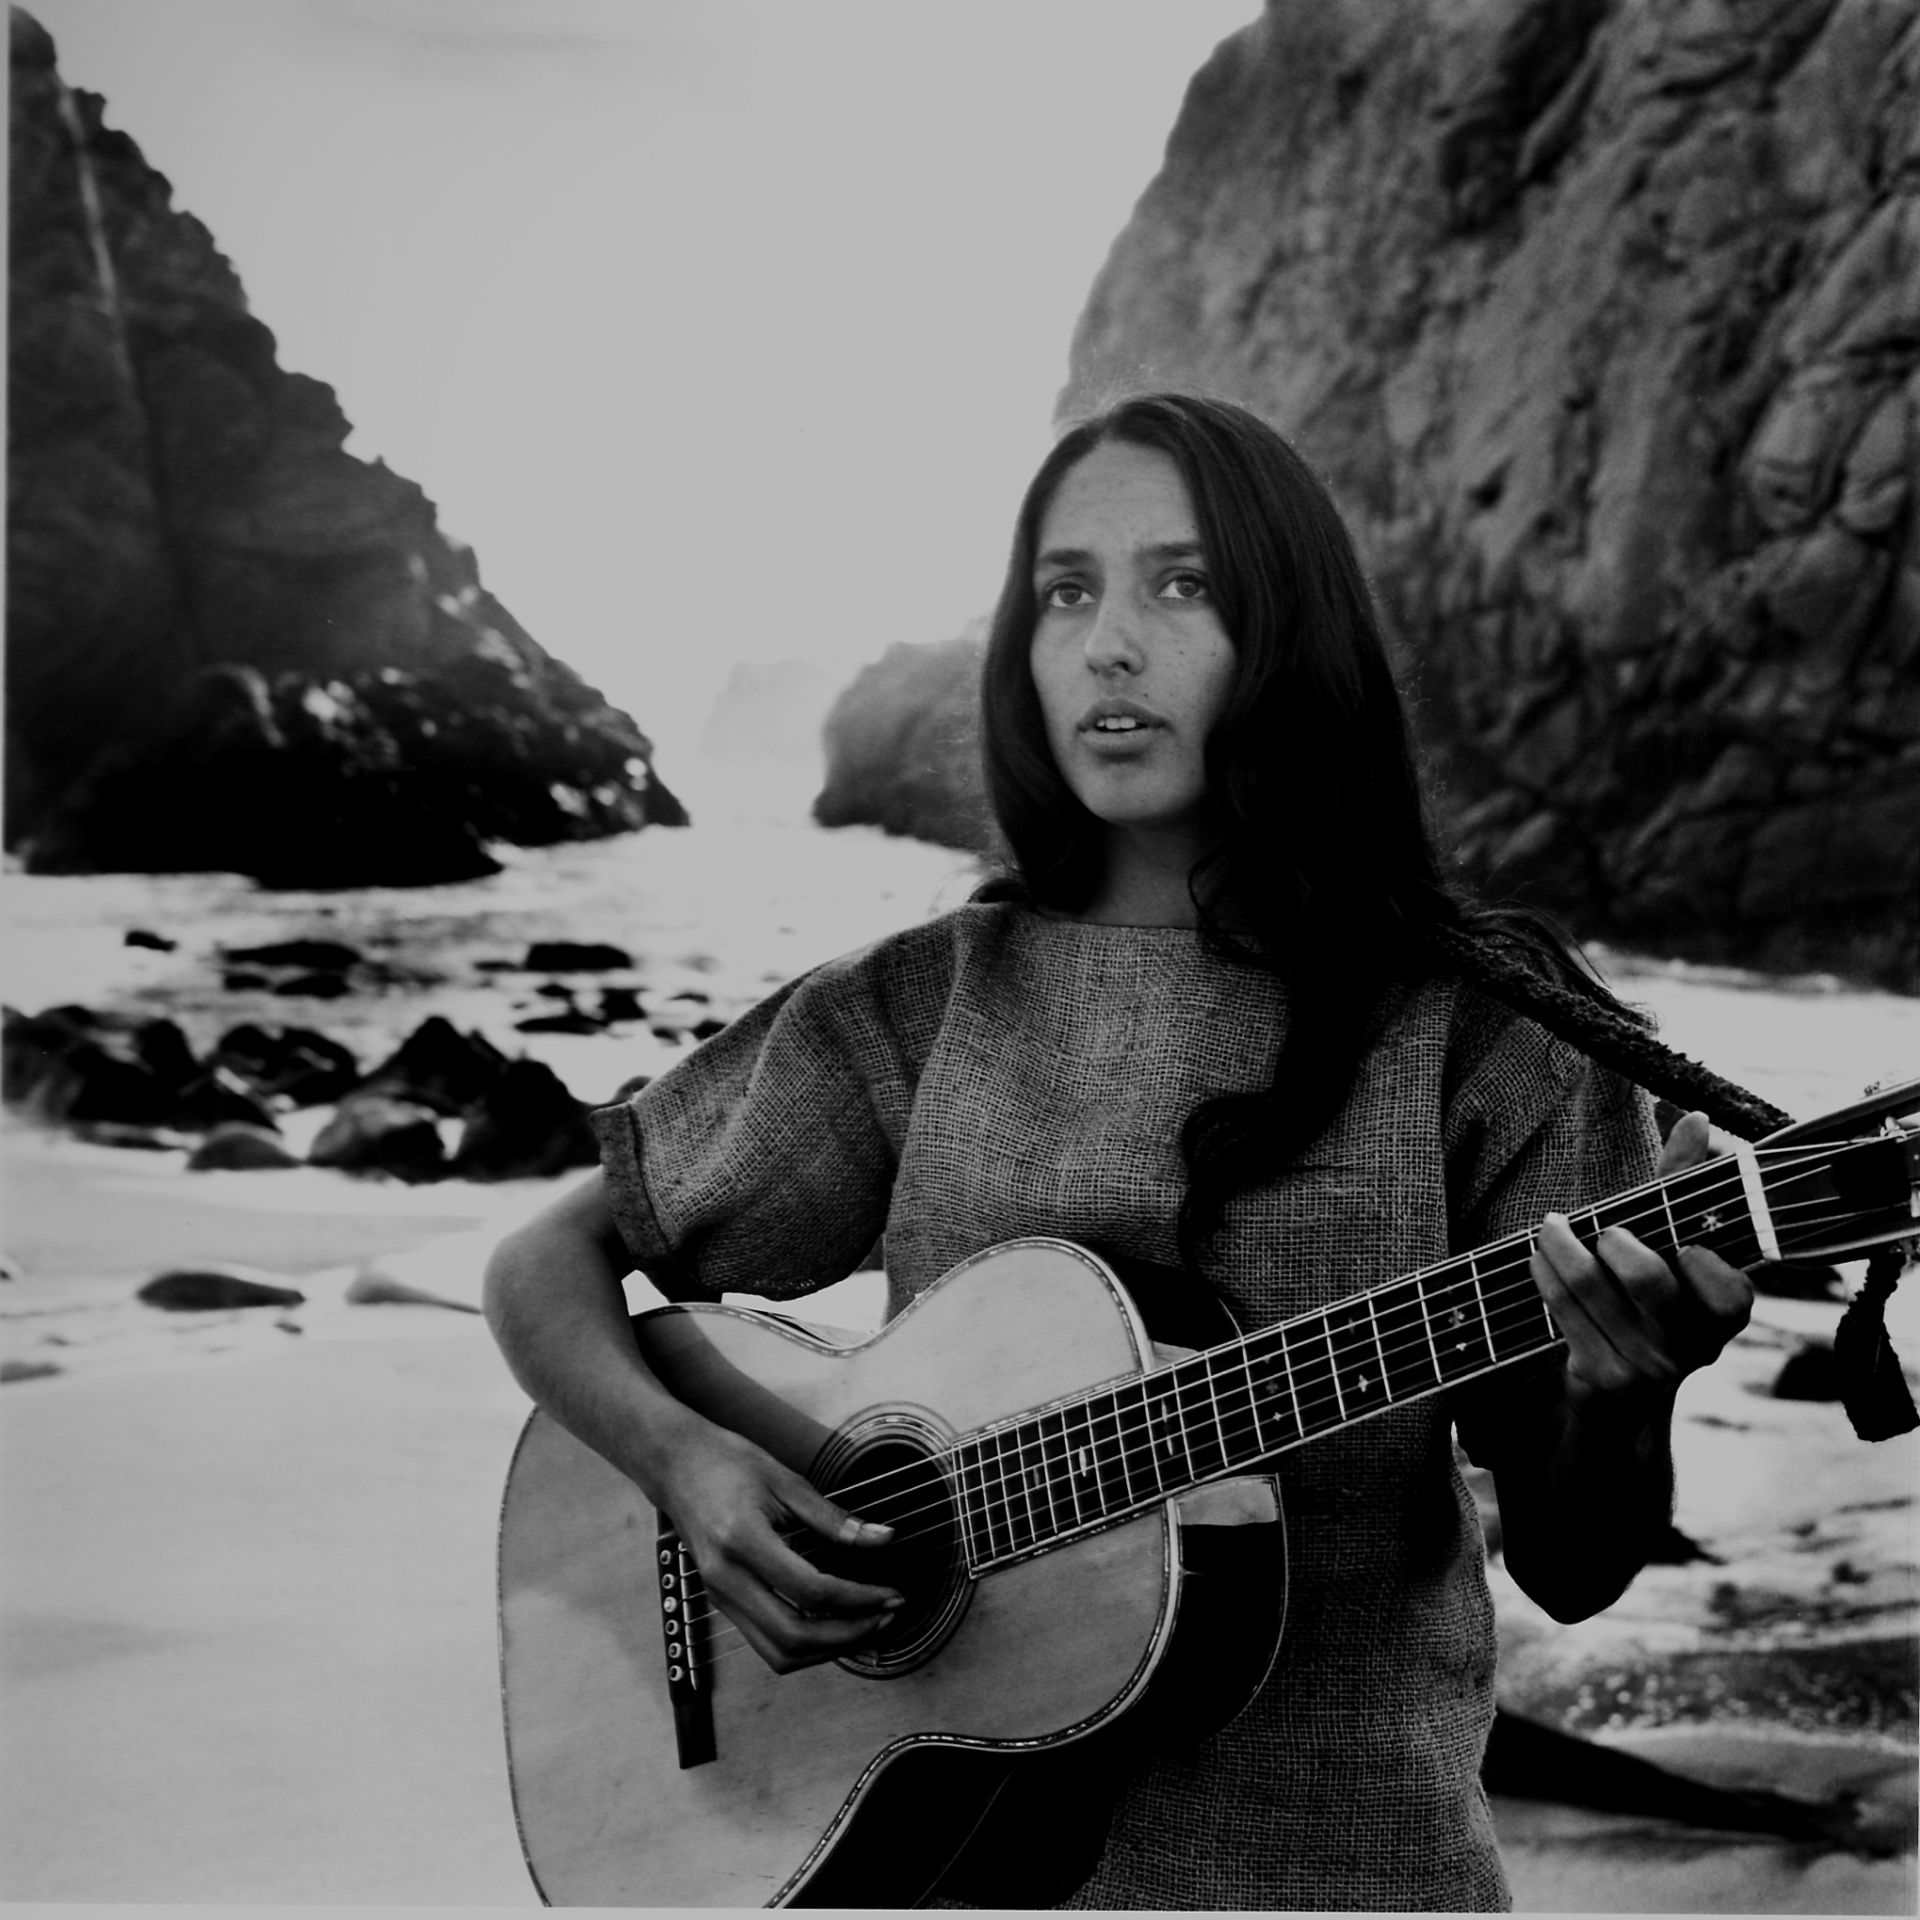 Joan Baez on the beach near her home, 1962 Photograph: Ralph Crane/The LIFE Picture Collection/Getty